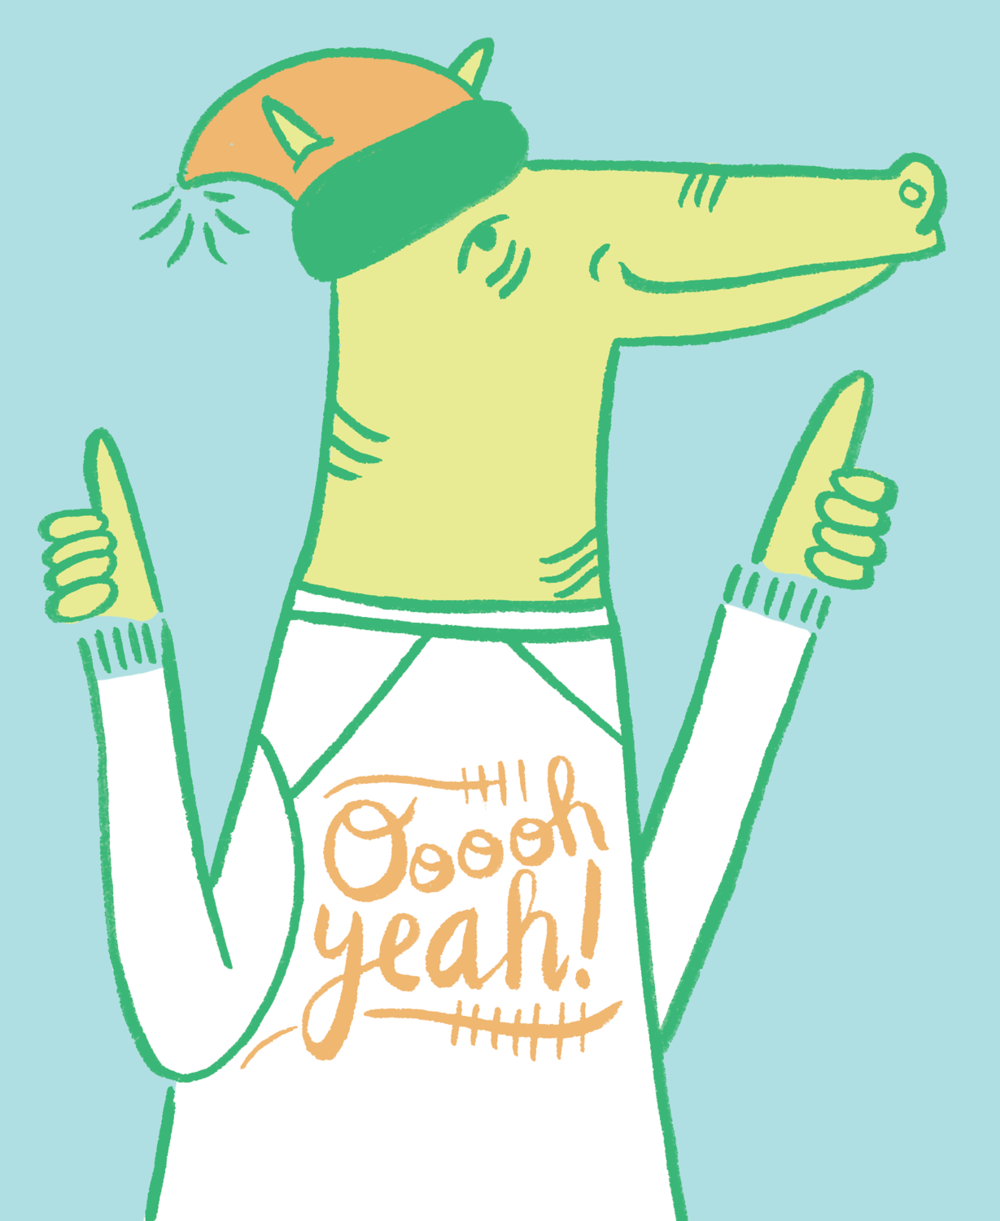 natalie-marion-oh-yeah-creature-illustration.png